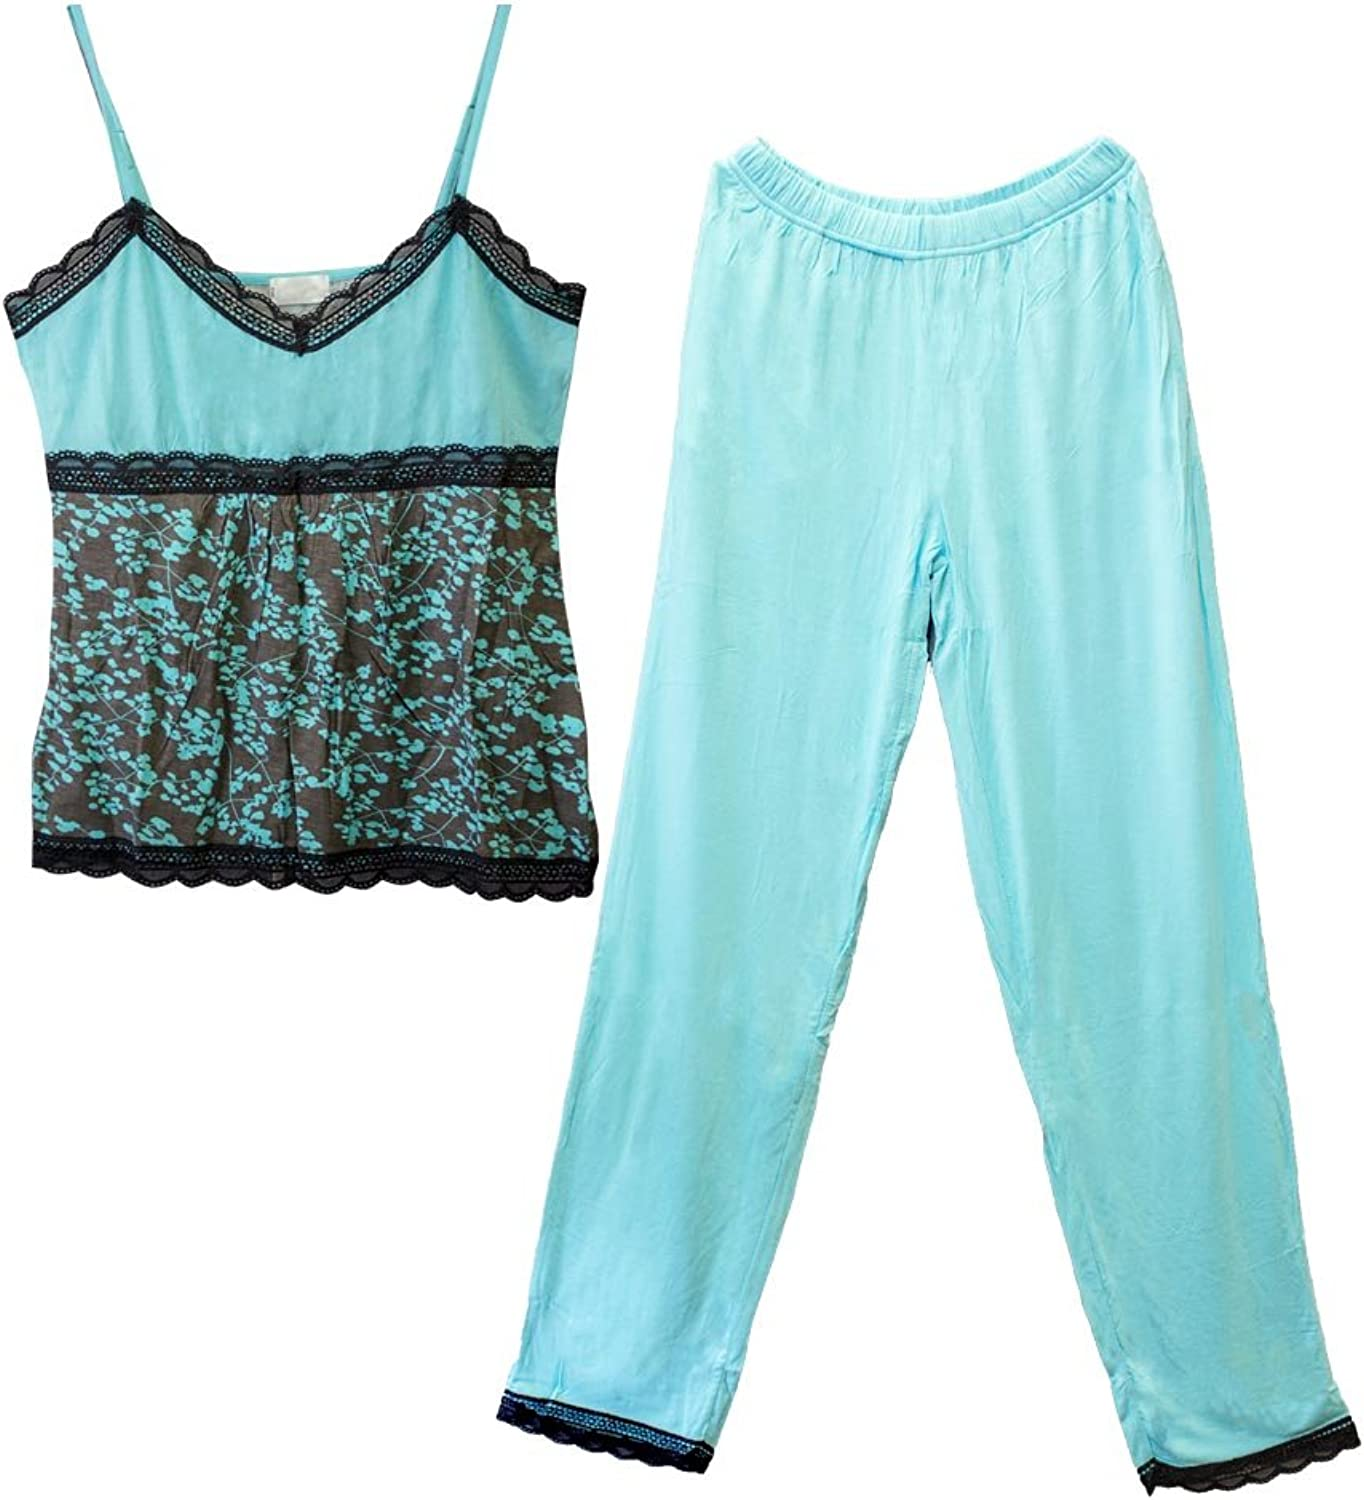 Girl Style Womens Pajama Set Knit Pajama Pants and Camisole with Lace Trim L1083CP